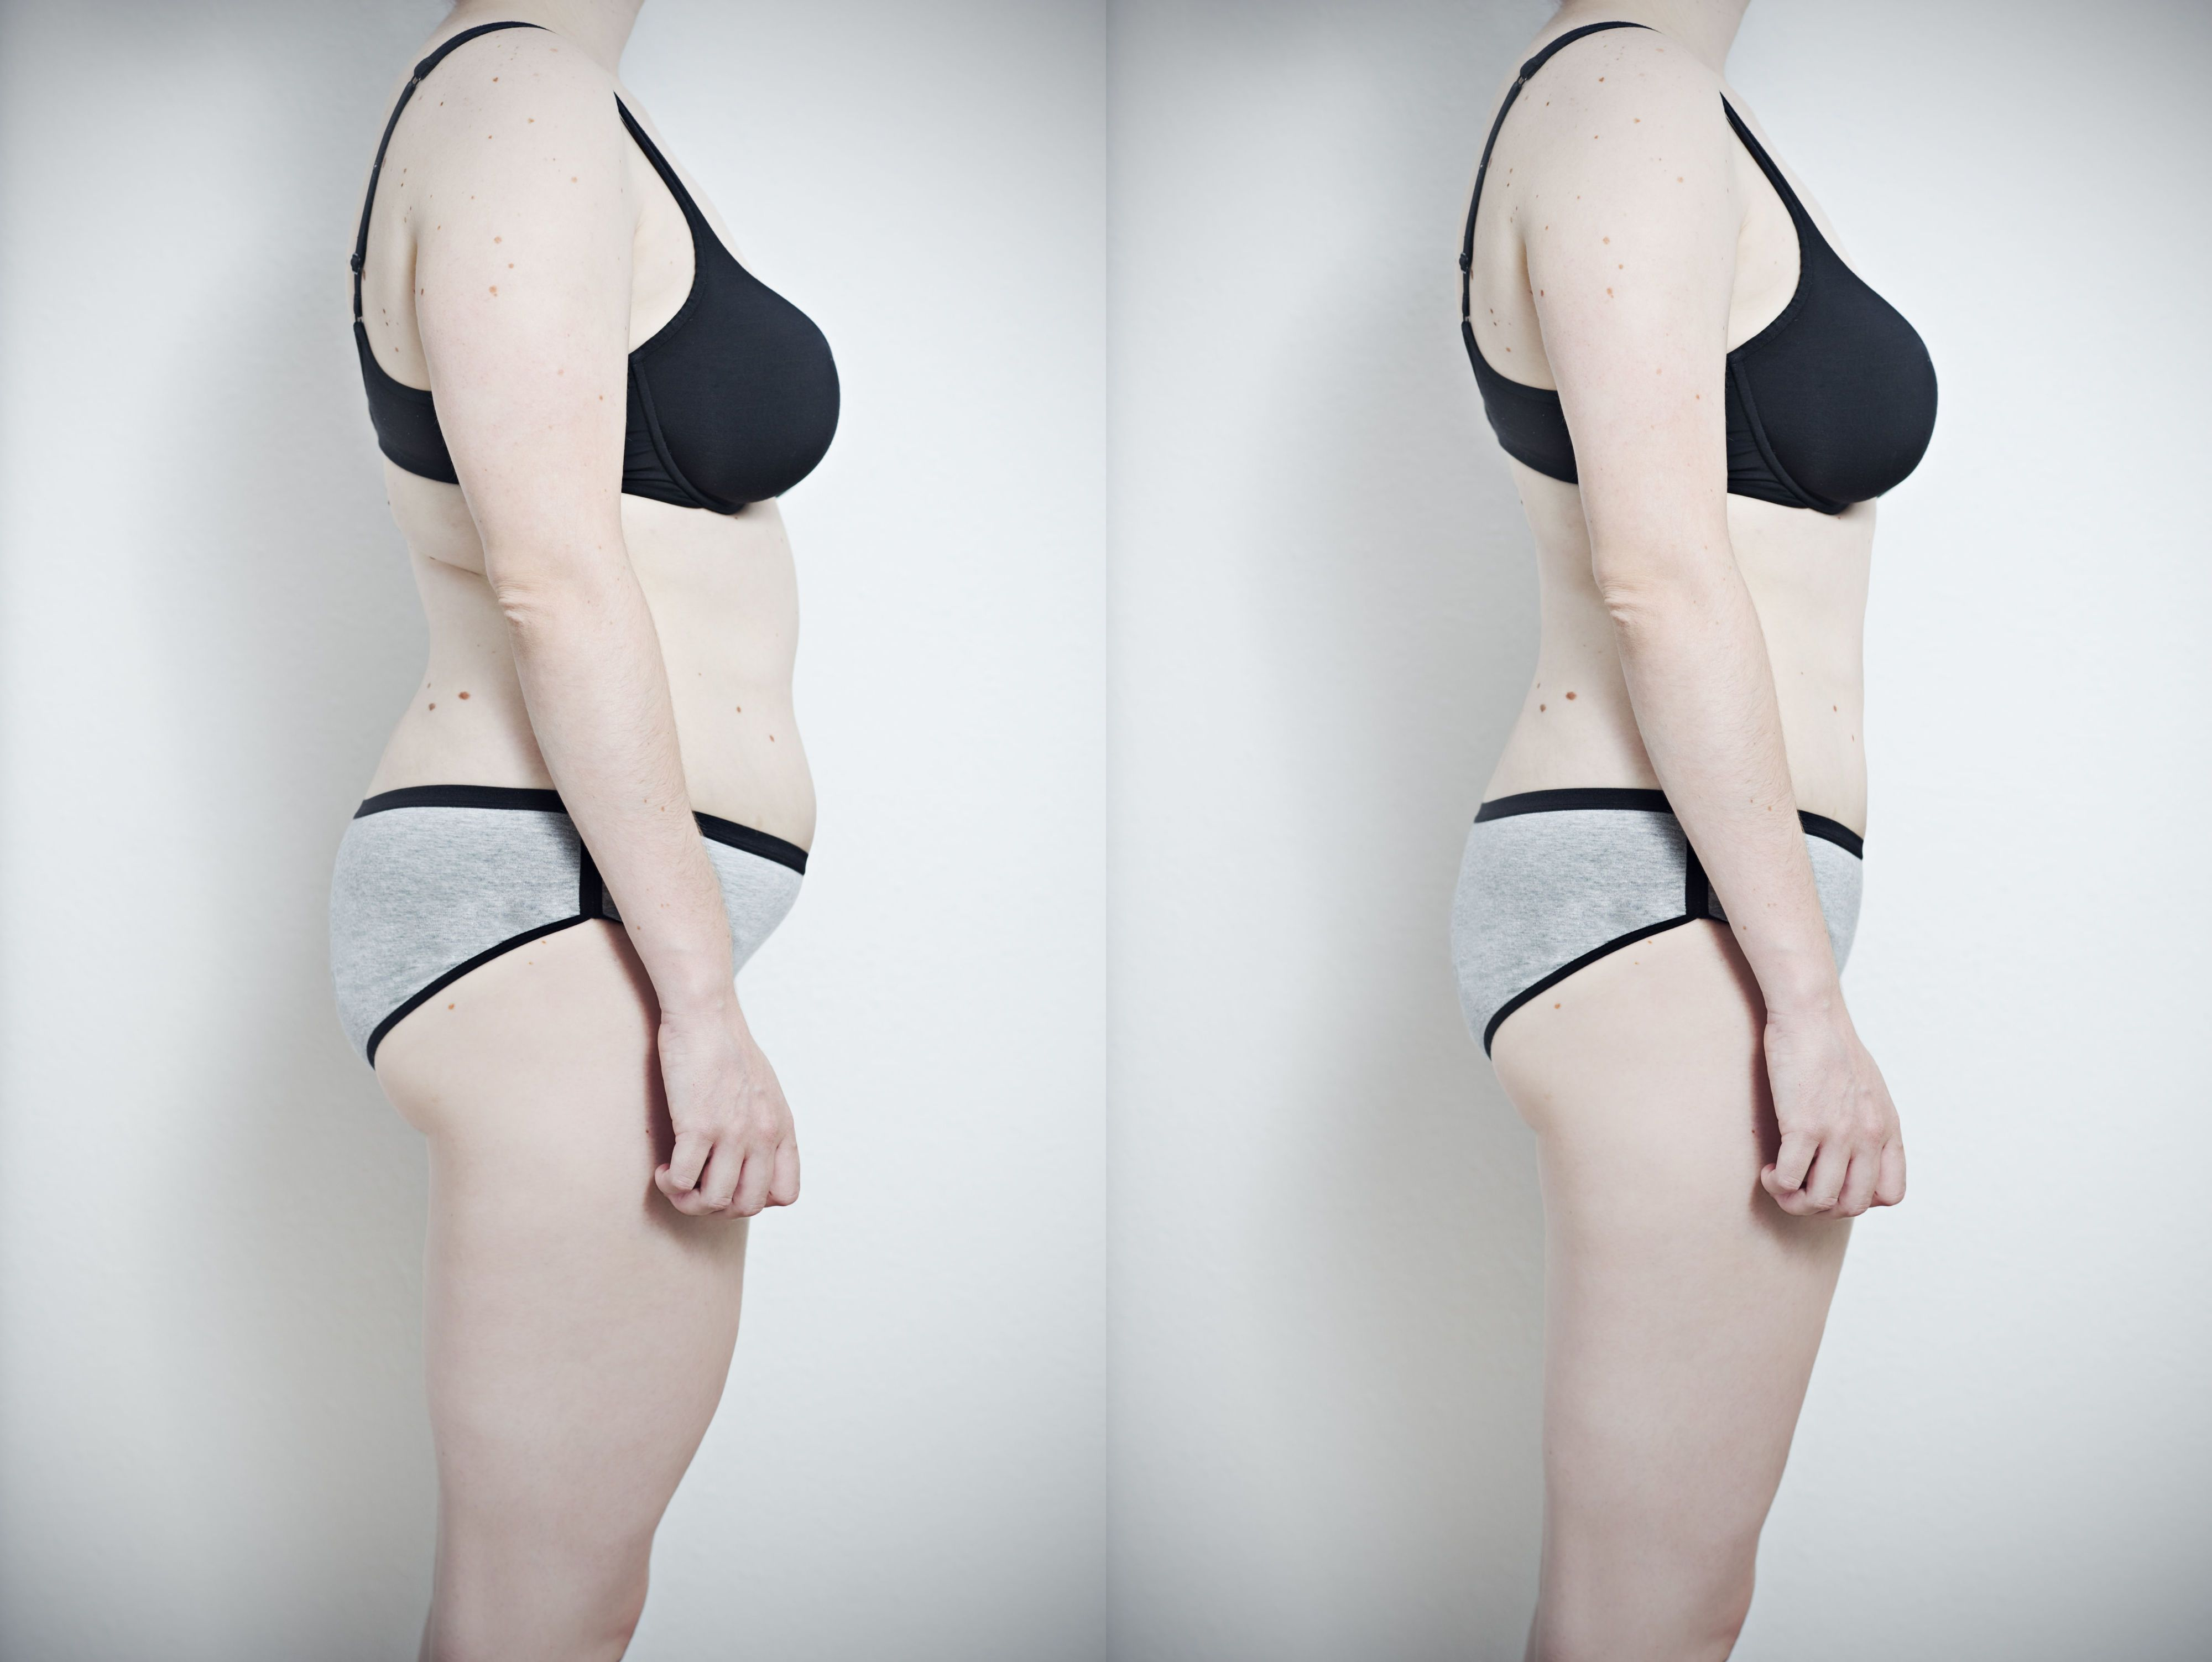 do you lose weight when bulimic